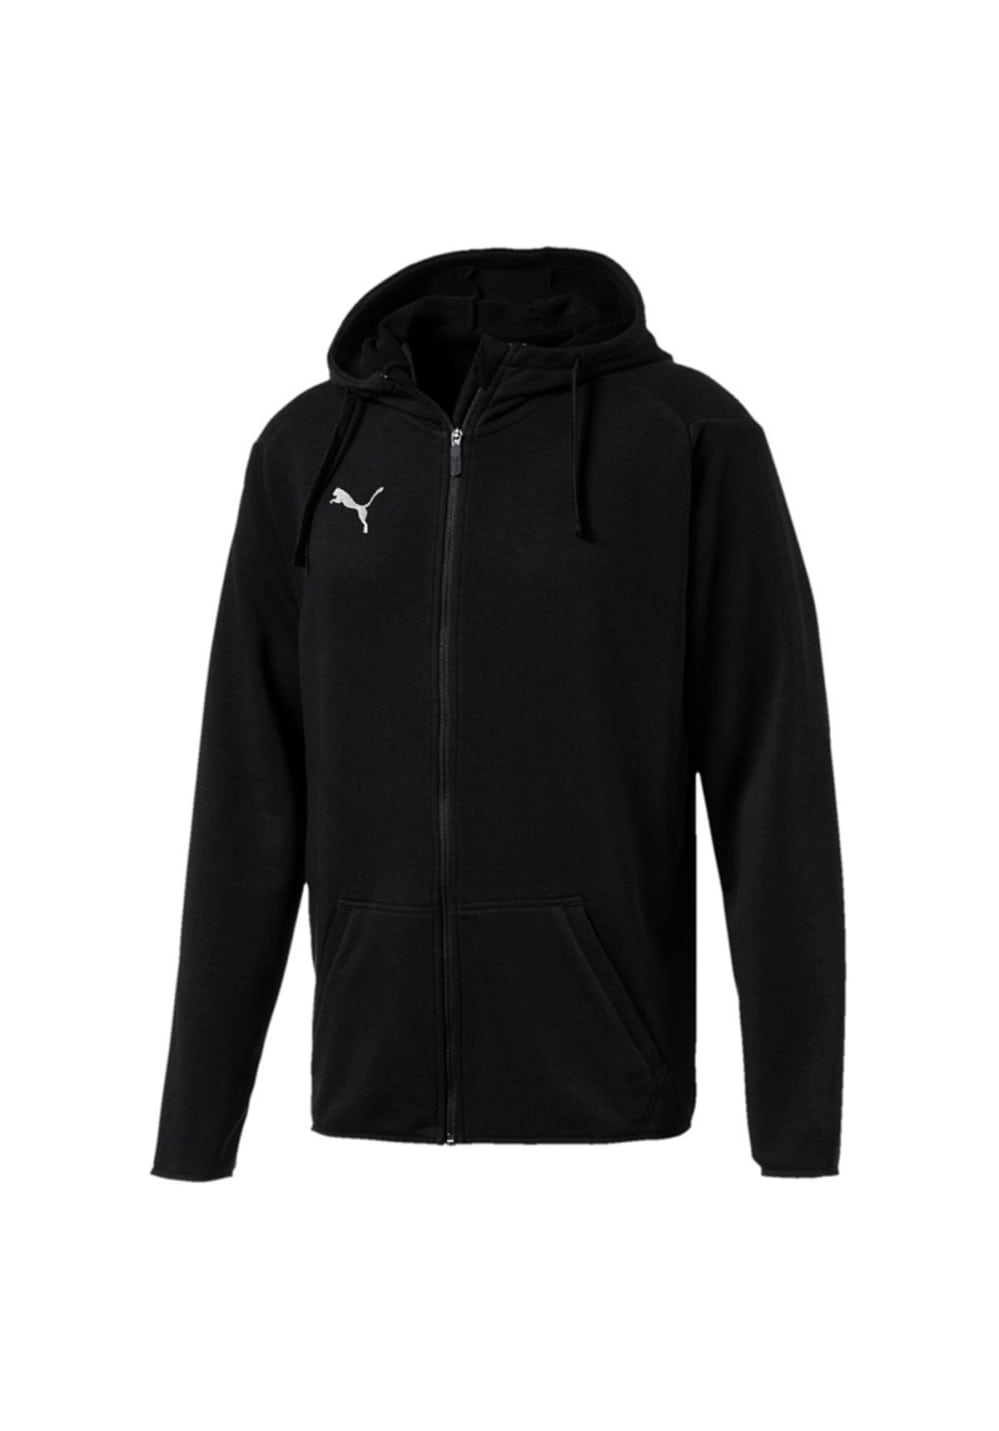 ... Puma Liga Casual Hoody Jacket - Casual clothing for Men - Black. Back  to Overview. -32% 52a262a750